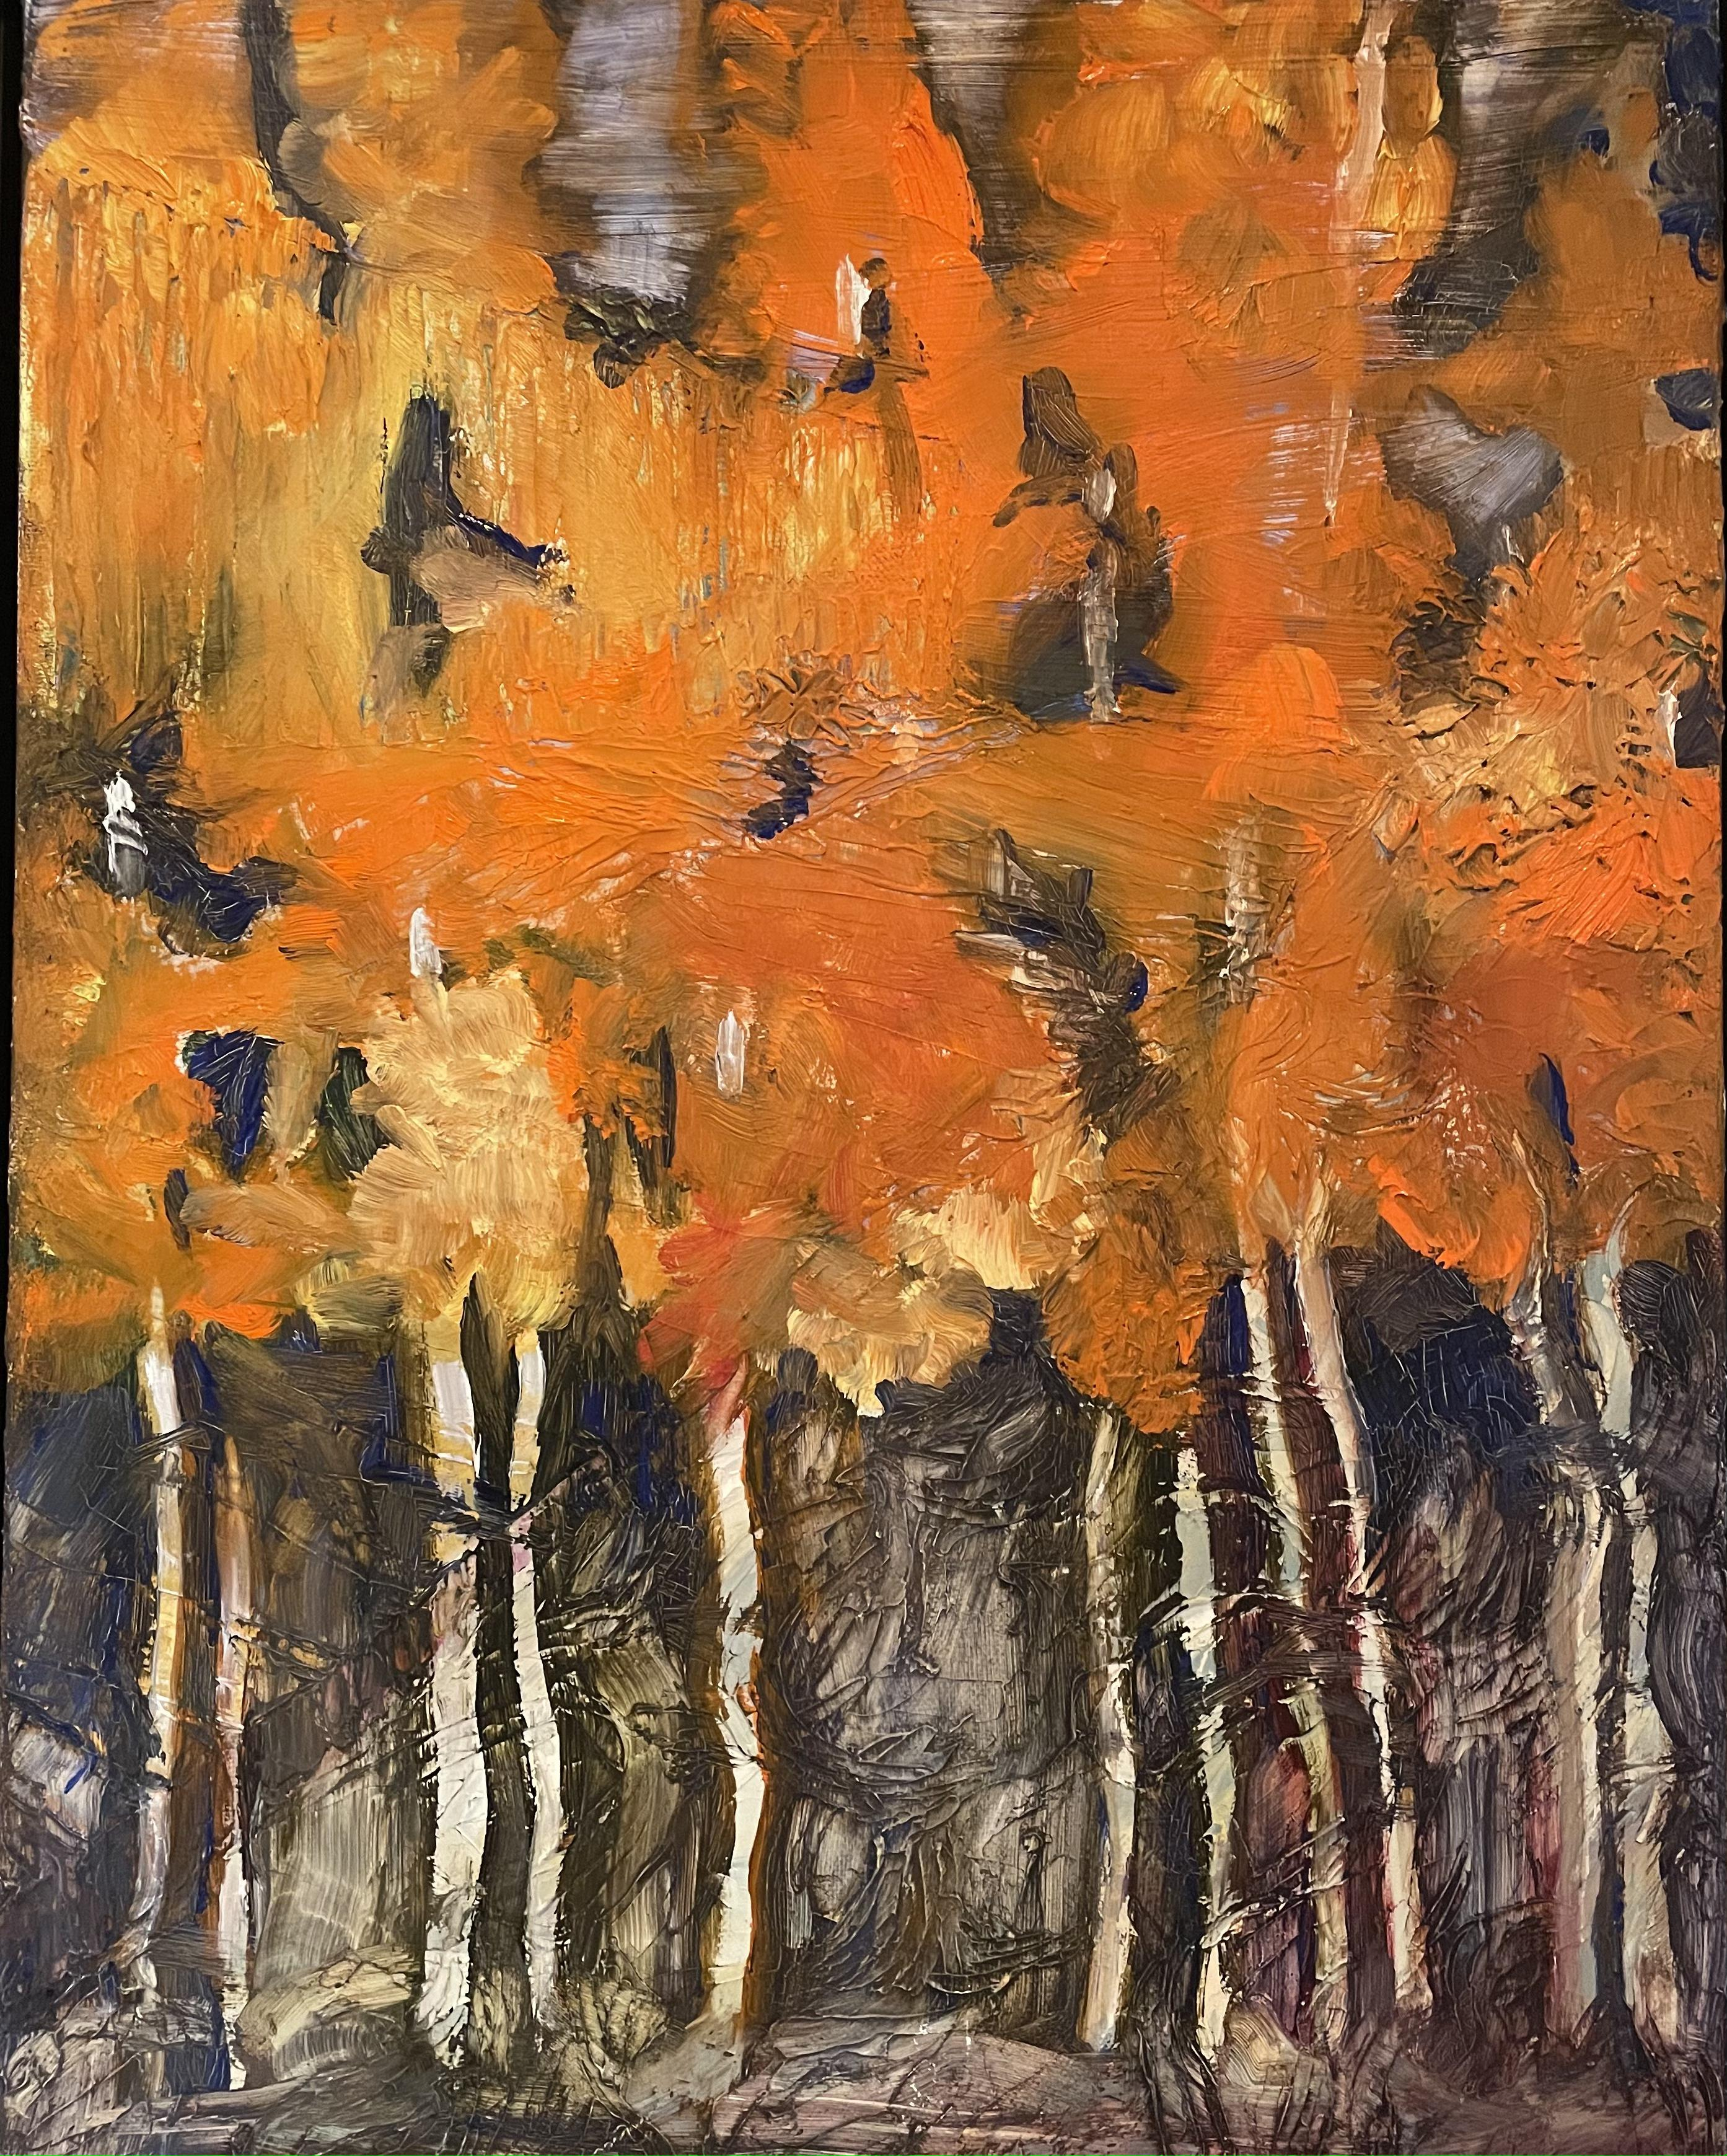 Orange Forests Trees, Abstract Landscape, Oil on Linen, Orange, Yellow